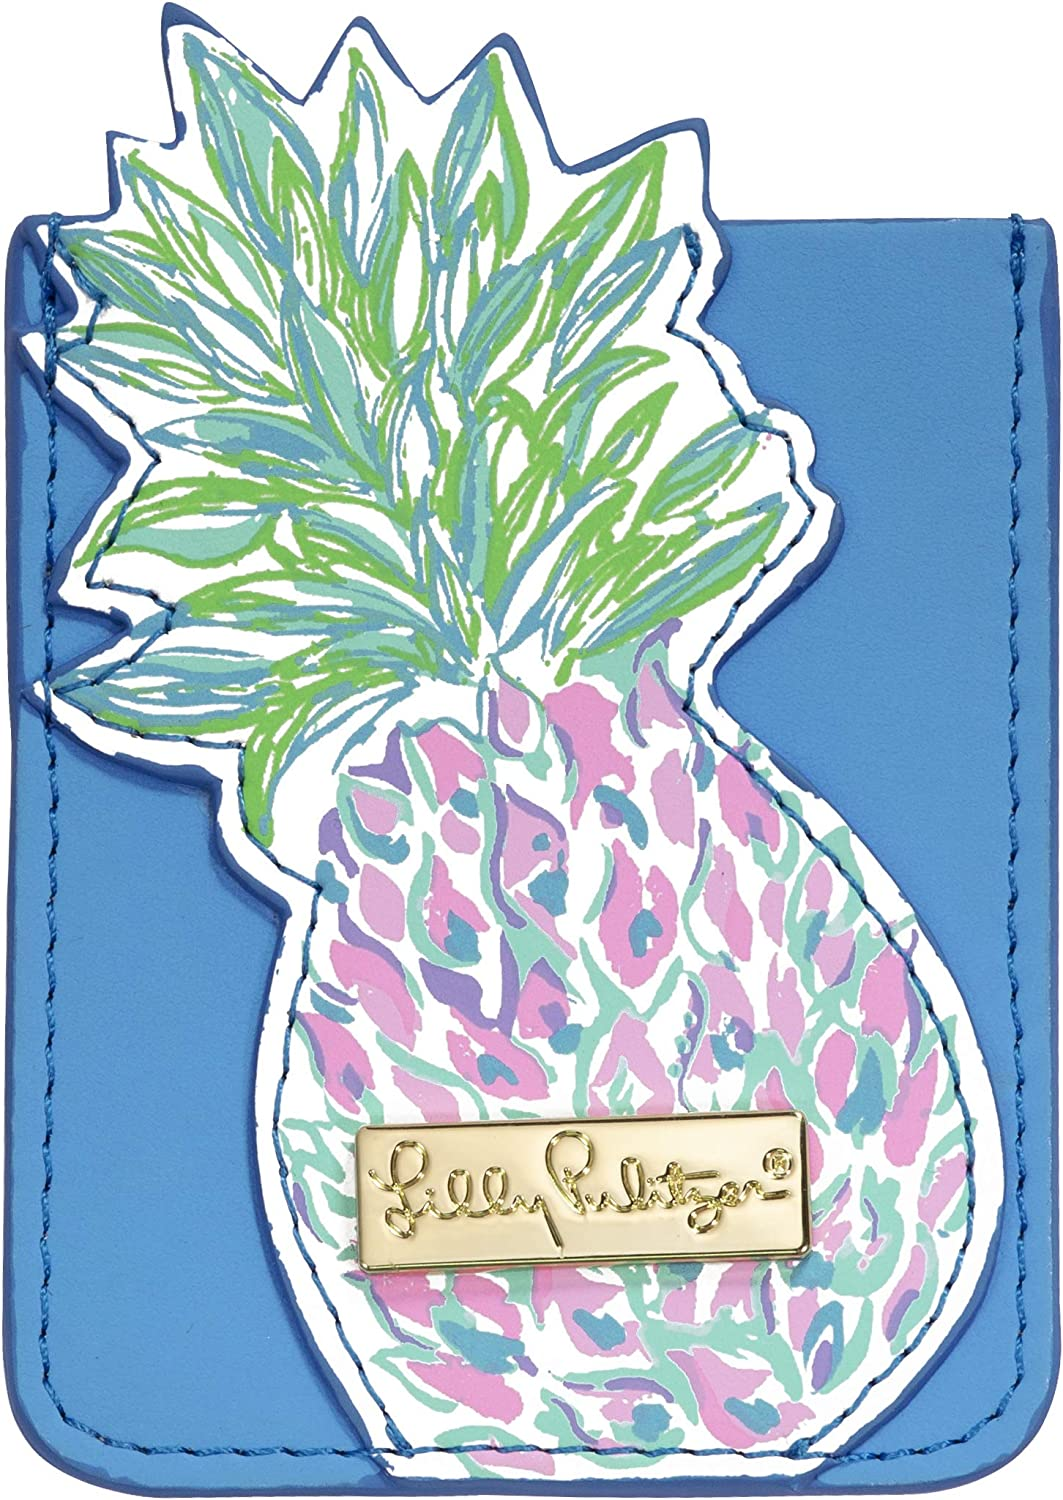 Lilly Pulitzer Leatherette Adhesive Tech Pocket Card Holder for Smartphone Back, Swizzle Out